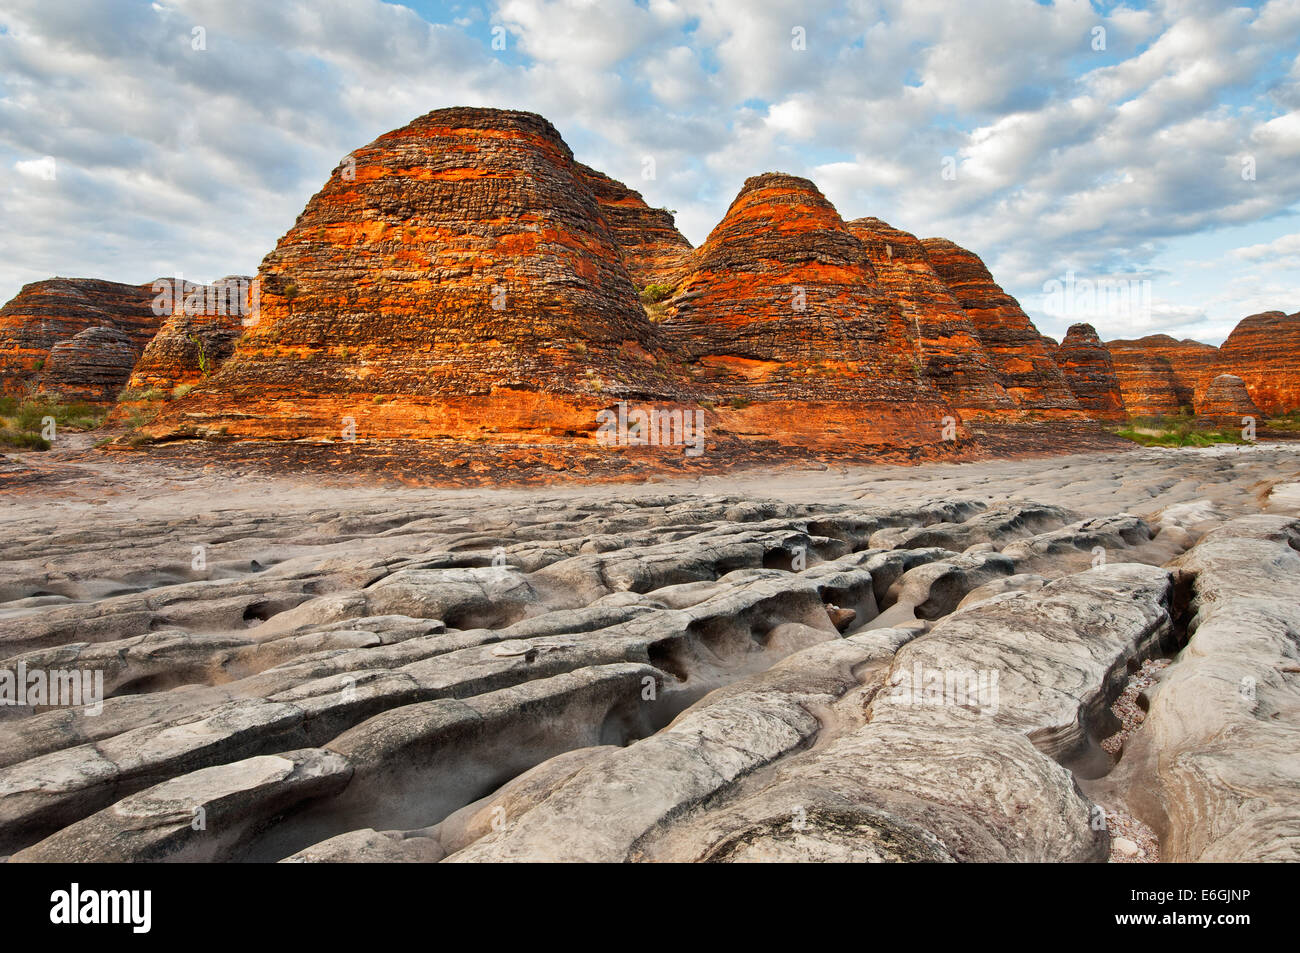 Beehive Domes of Purnululu National Park. - Stock Image